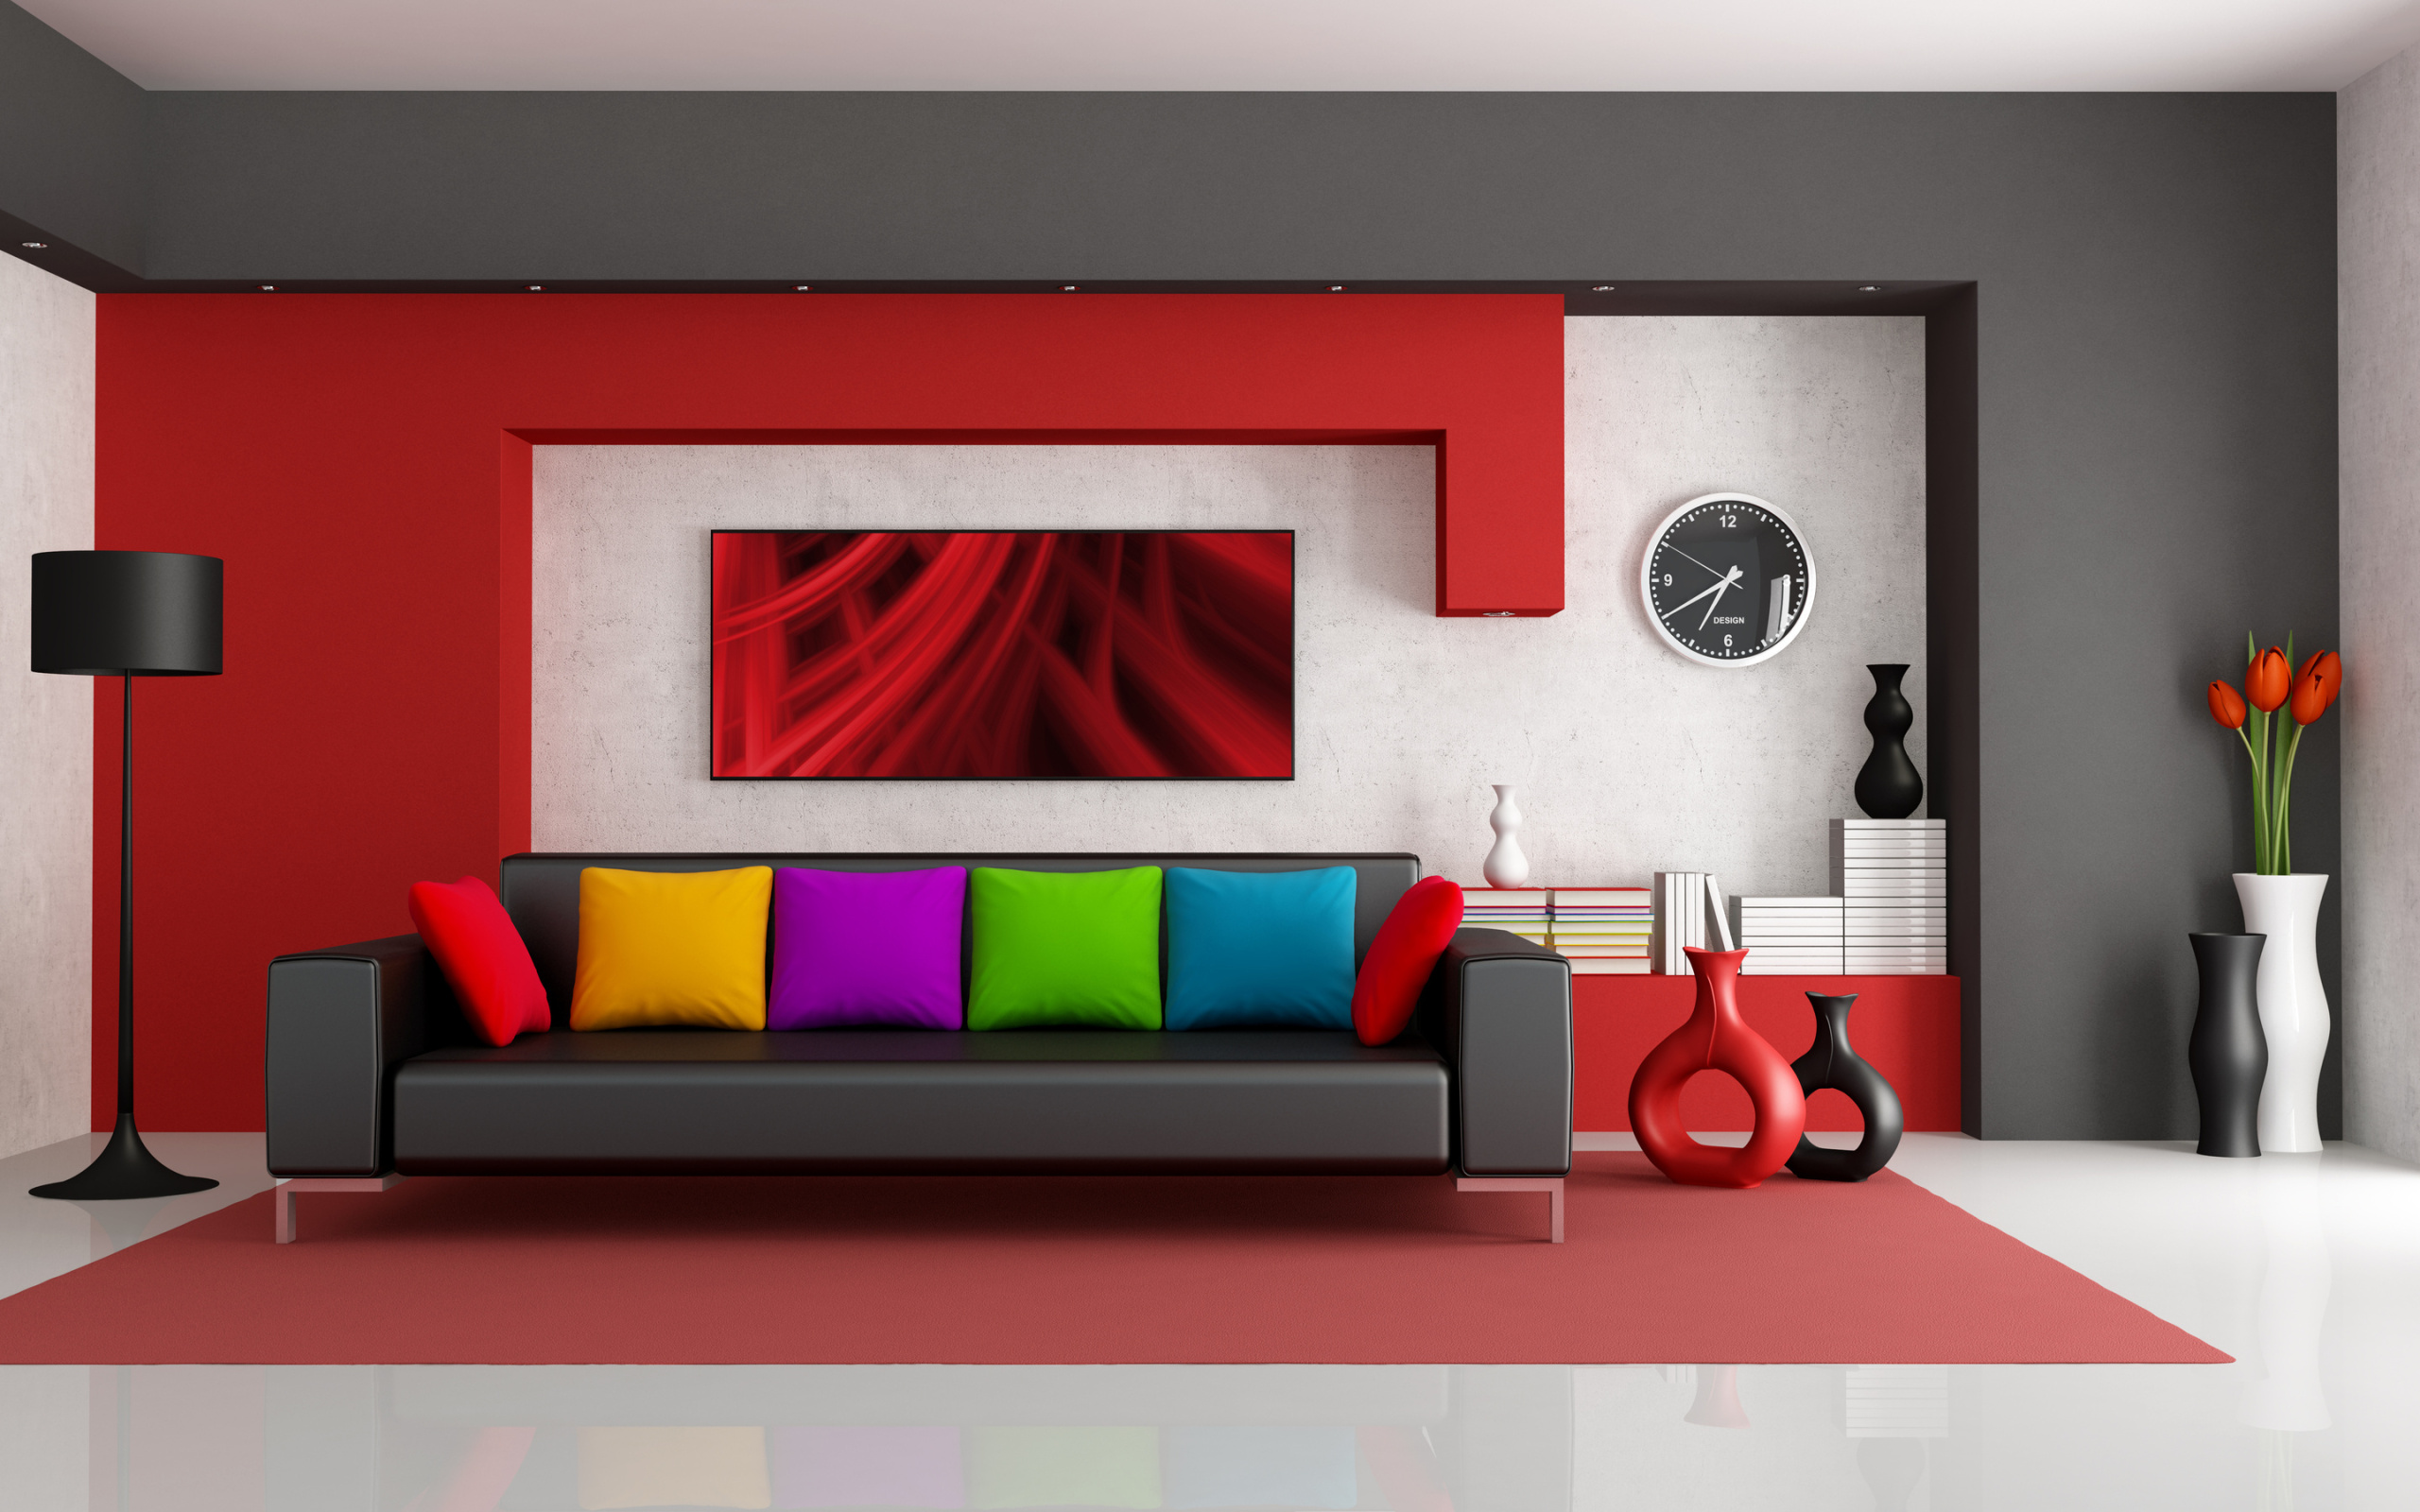 Alluring Color Scheme to Complete Interior Design with the Combination of Grey and Red